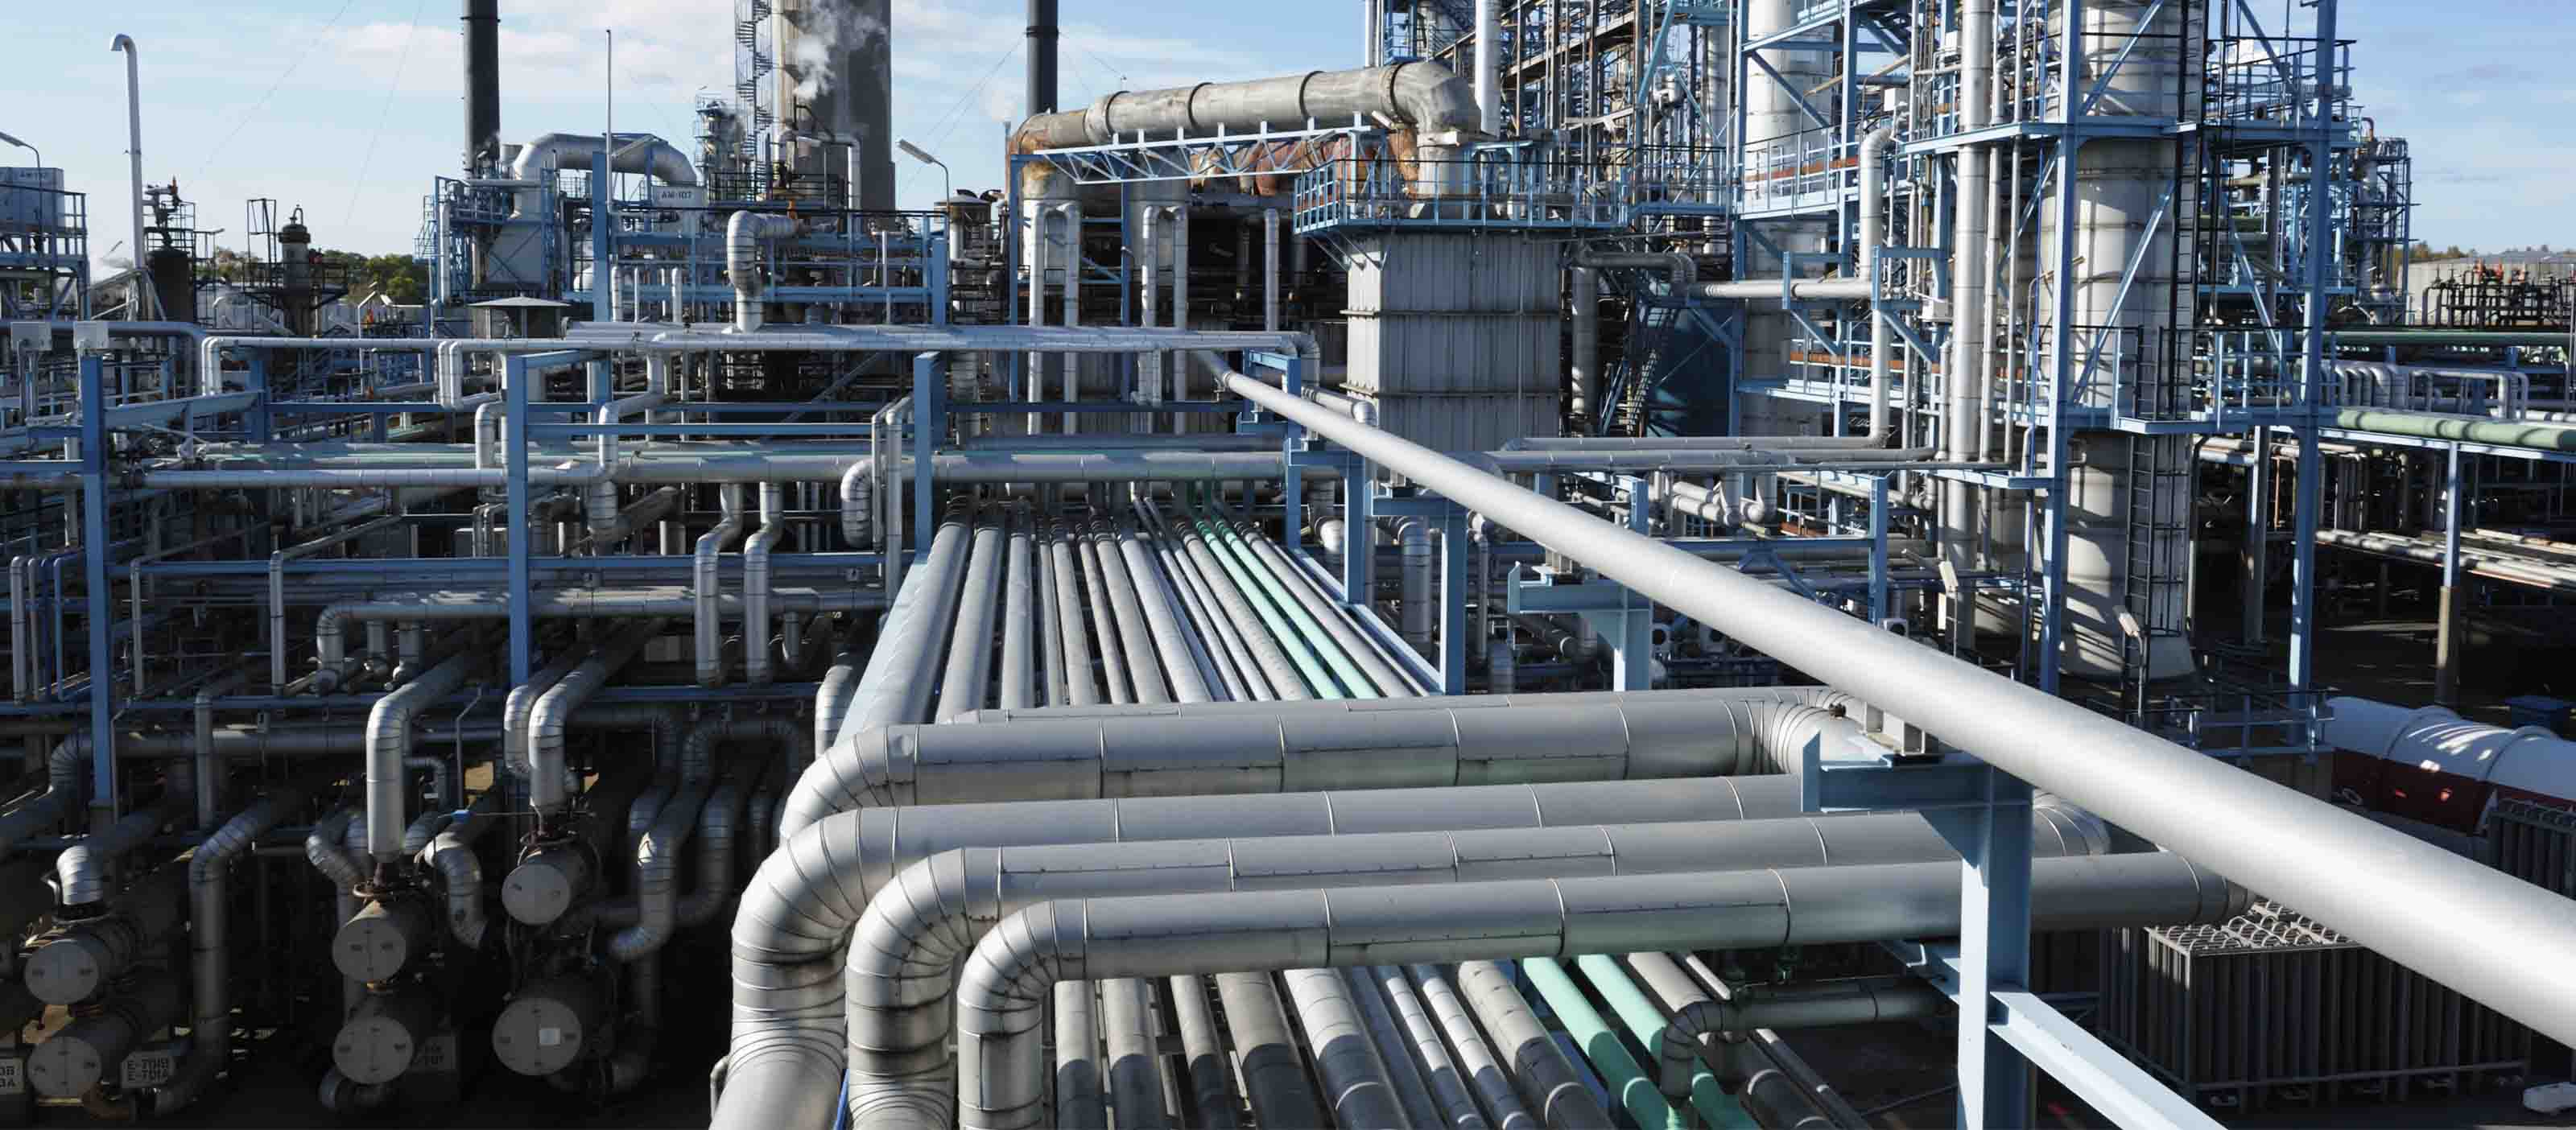 Oil and Gas pipelines | Software for petrochemical industry | GE Digital